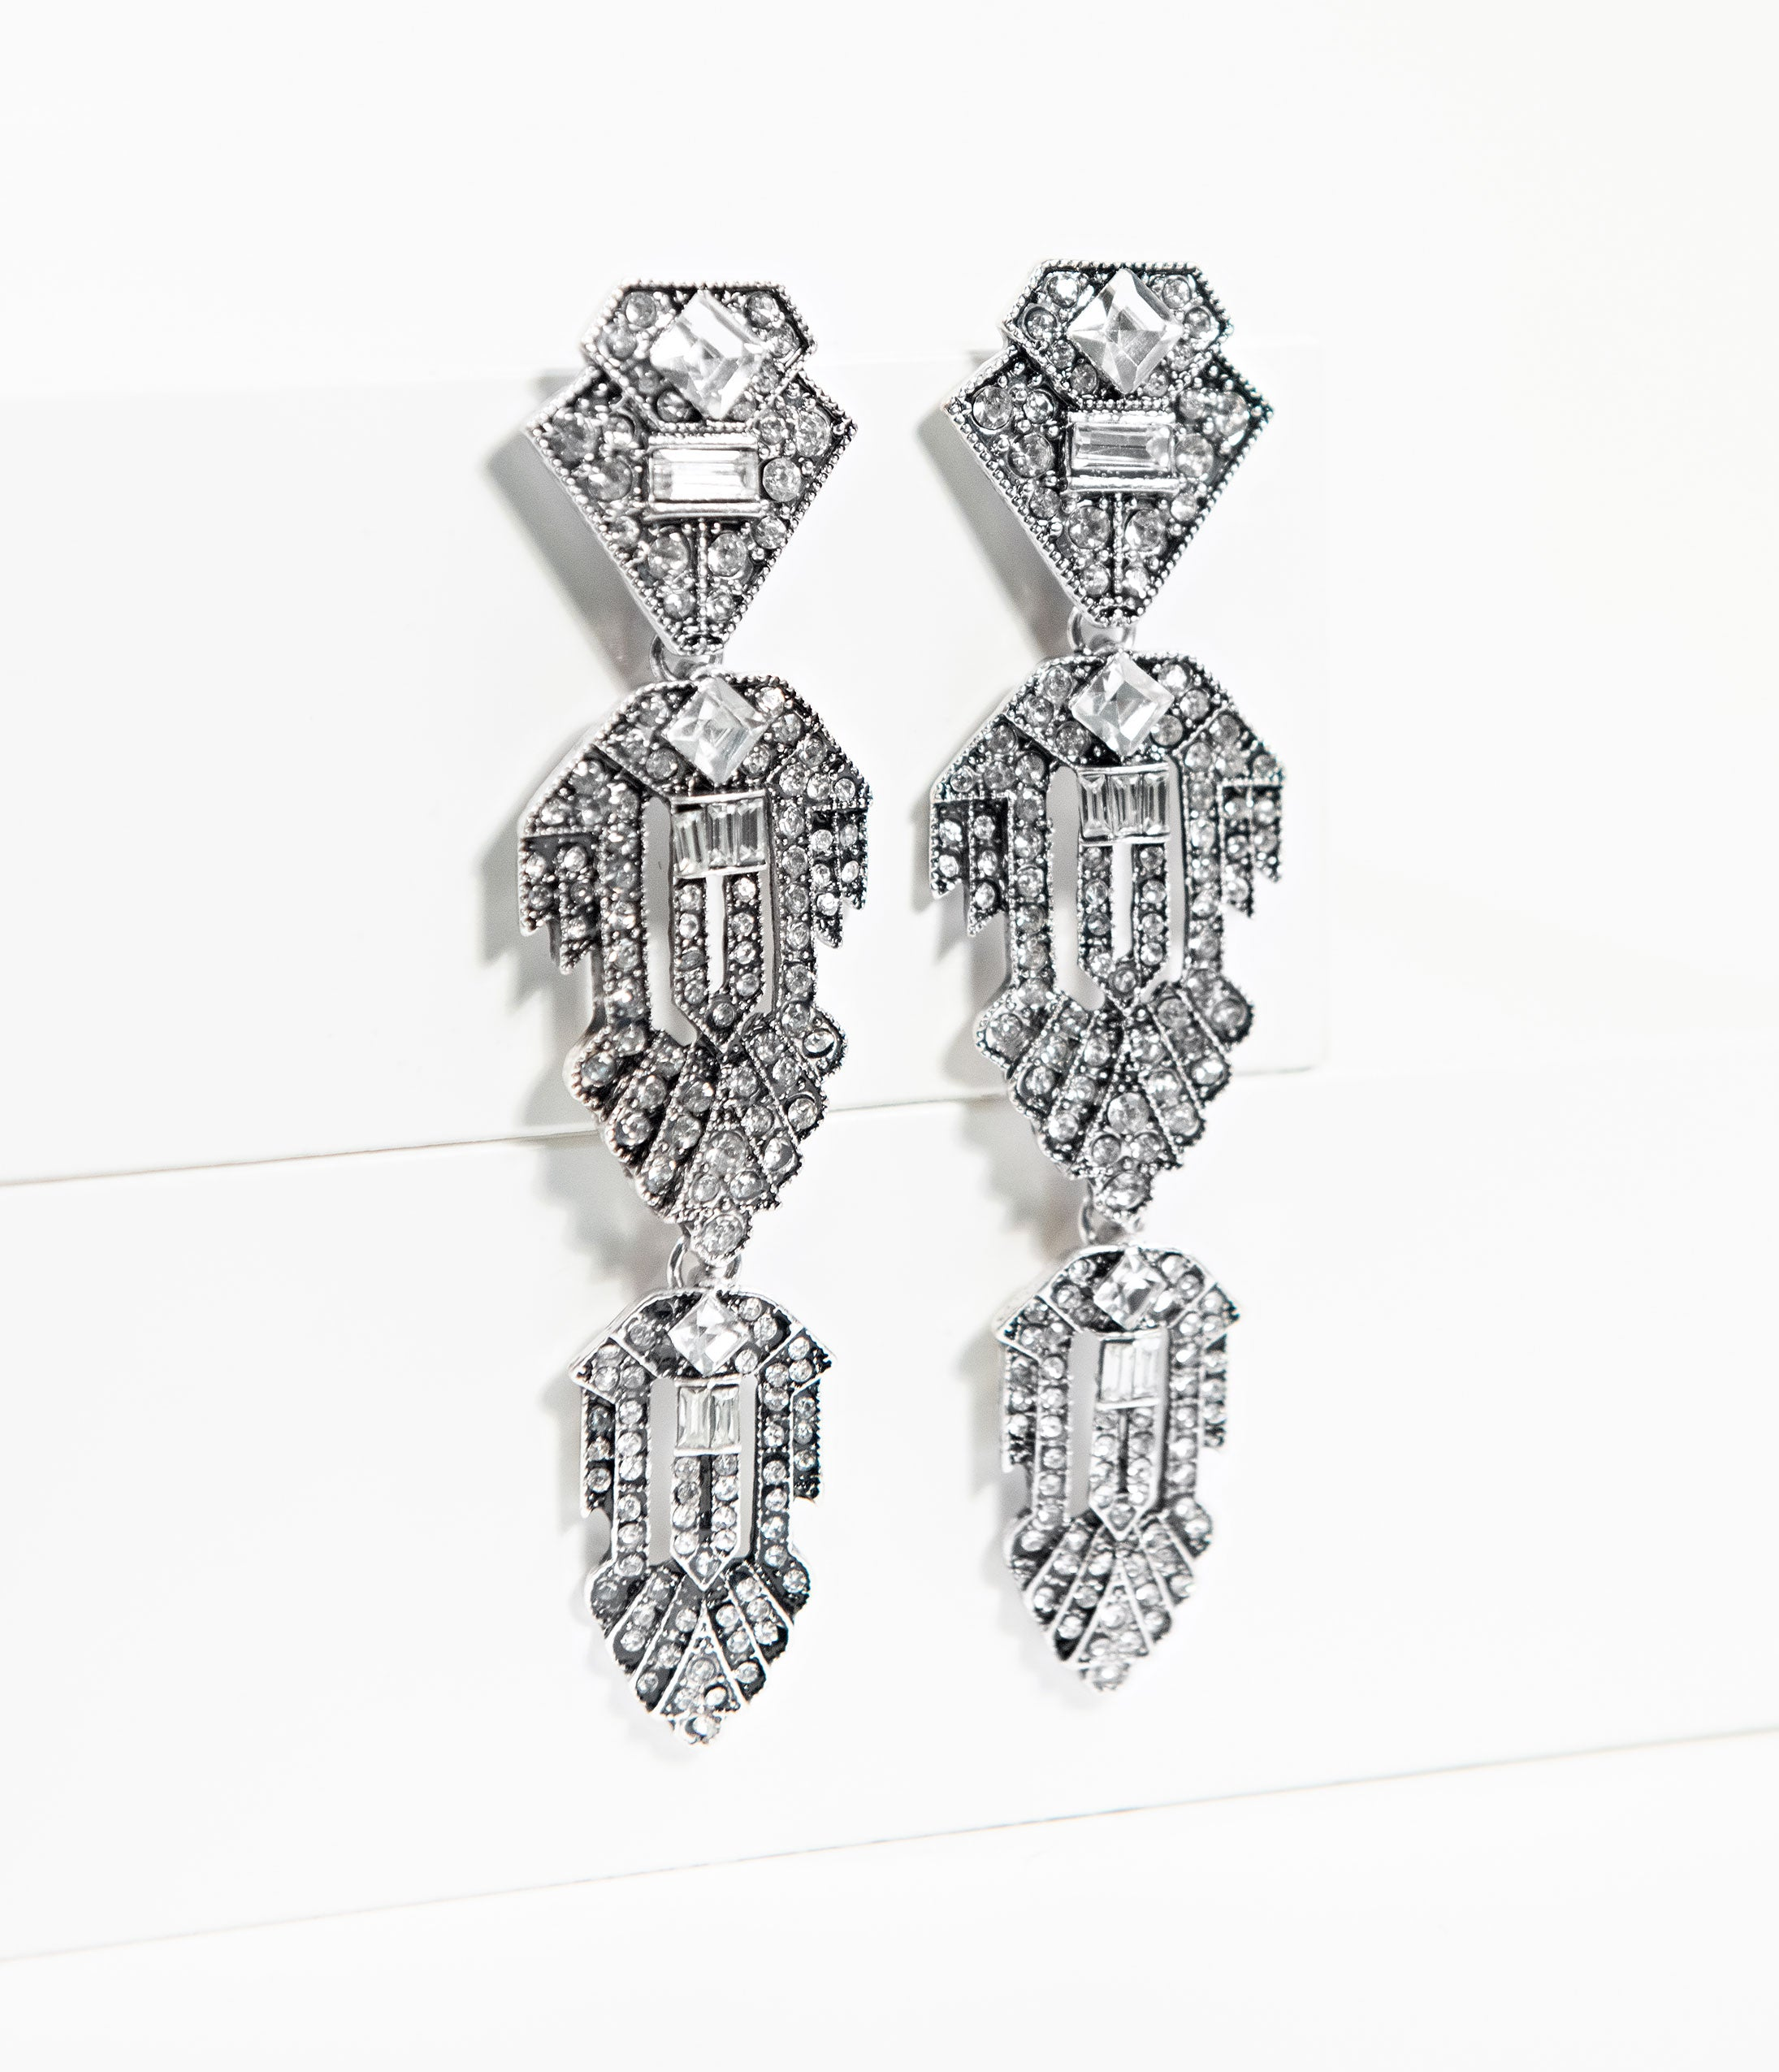 1920s Gatsby Jewelry- Flapper Earrings, Necklaces, Bracelets 1920S Style Silver Rhinestone Nouveau Drop Earrings $32.00 AT vintagedancer.com